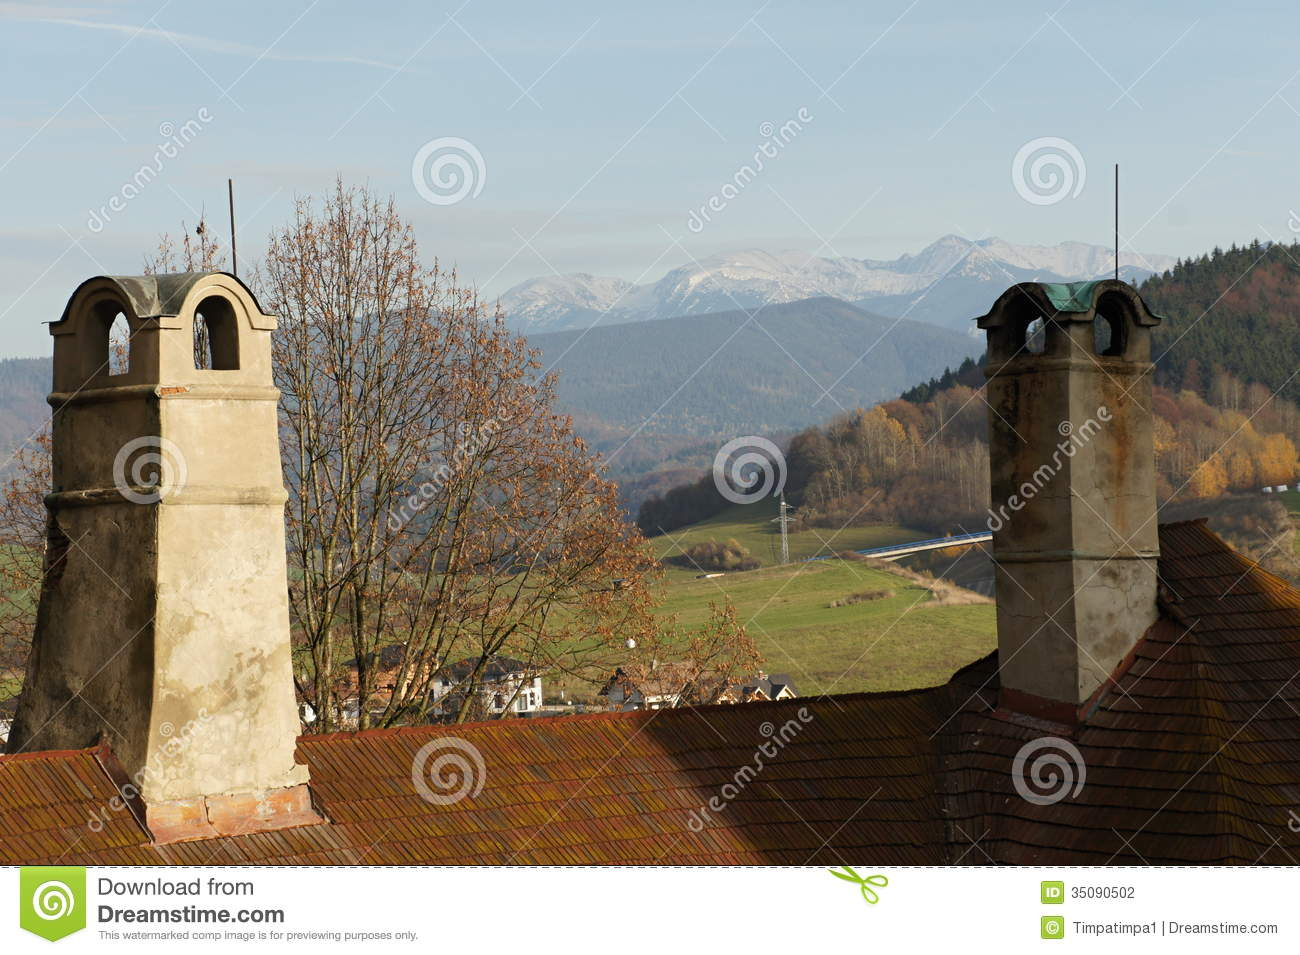 Chimney and roof of Orava castle